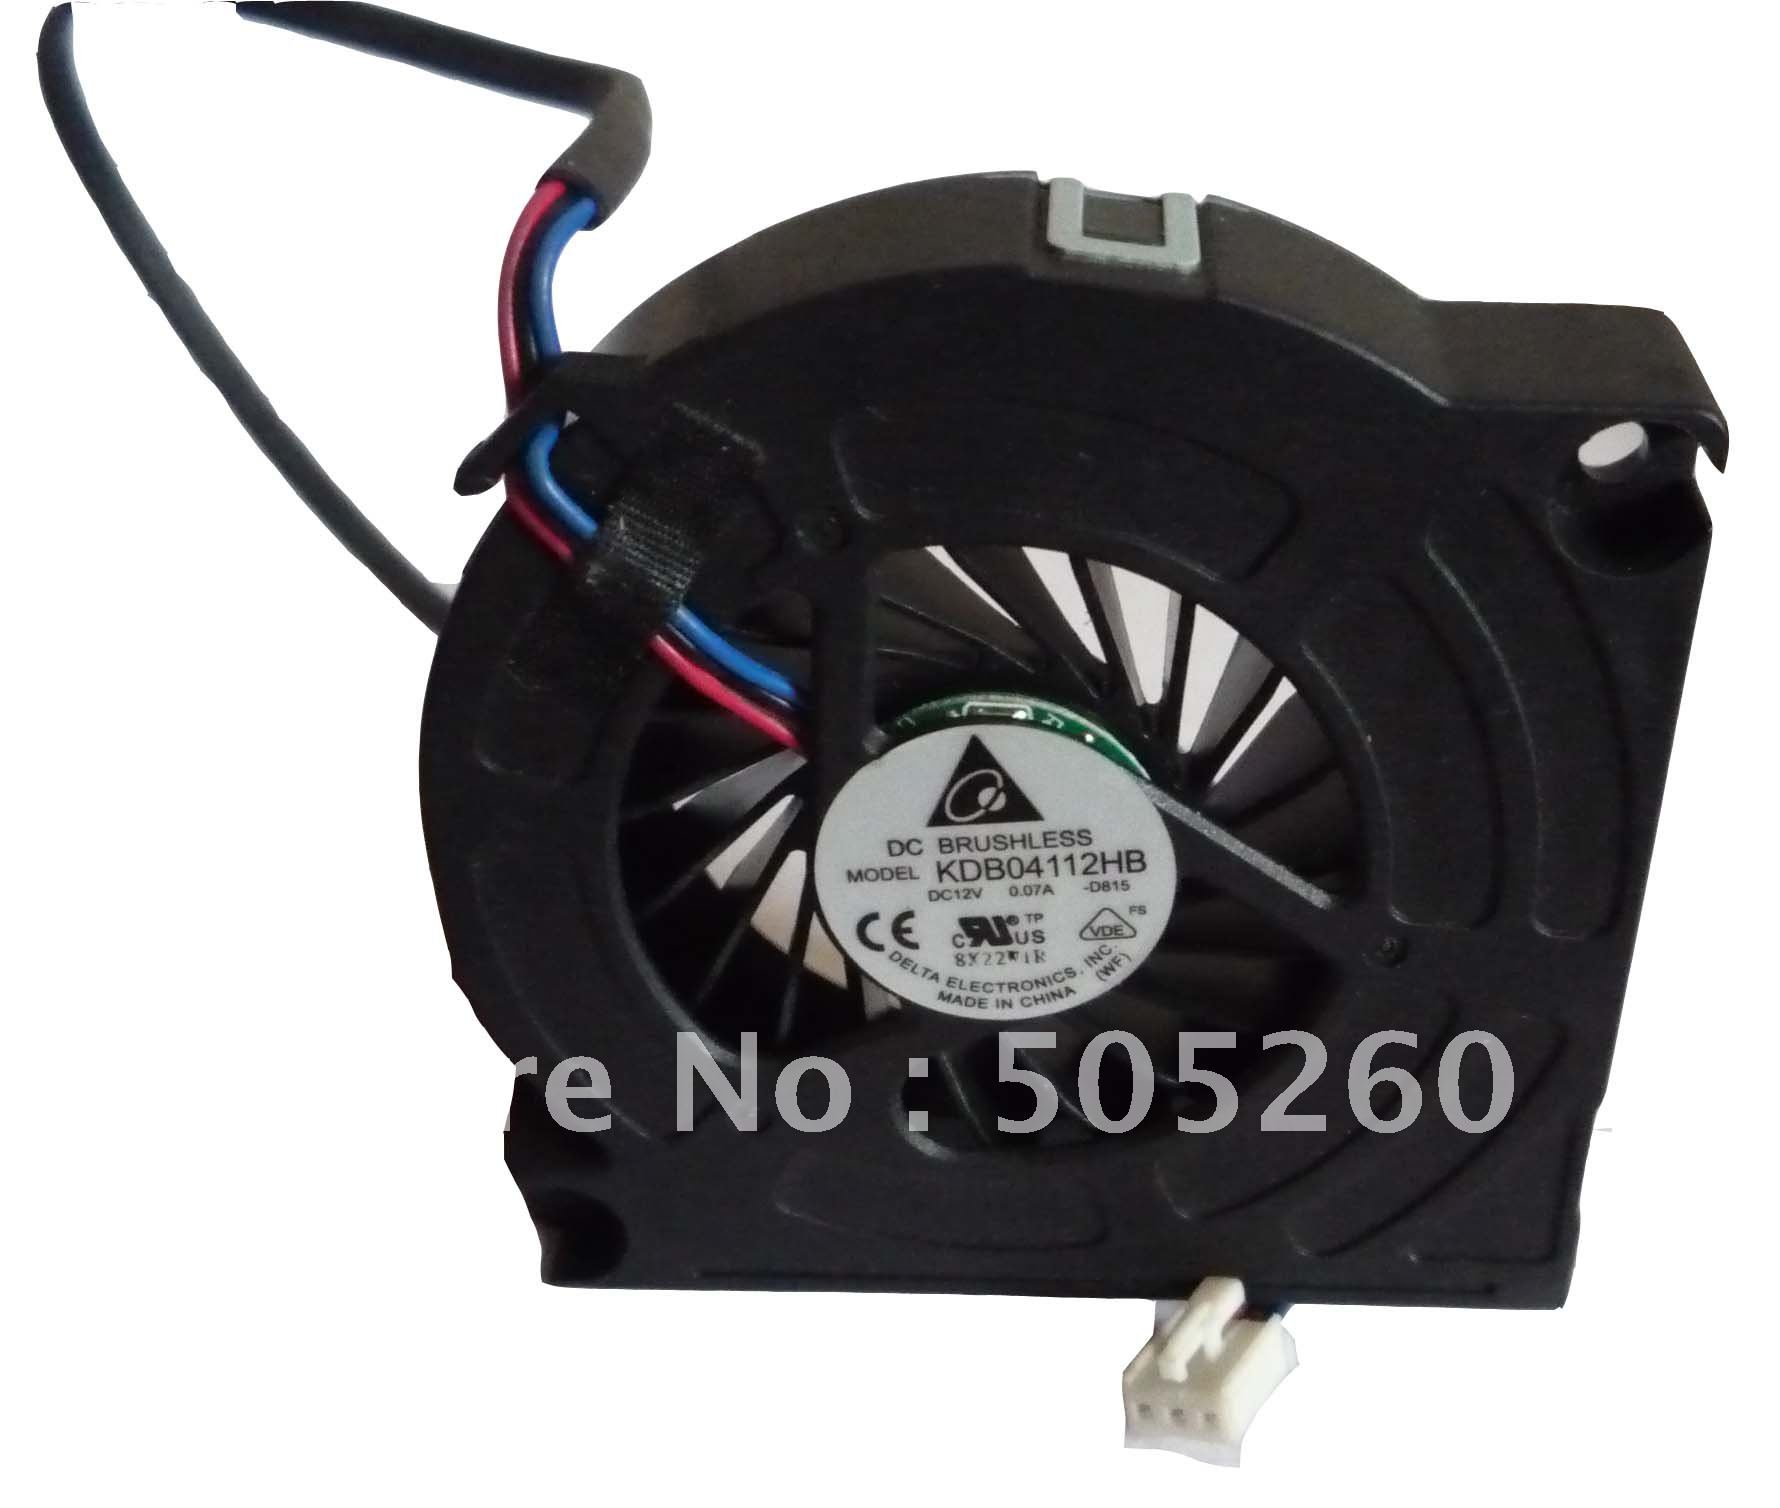 DELTA 6015 12V 0.07A KDB04112HB 6CM Mute blower Projector cooler cooling fan FOR TV SAMSUNG LE40A856S1 LE52A856S1MXXC free shipping original delta cooling fan nfb10512hf 7f03 49 87y01g001 12v 0 39a 3 wires projector 5pcs lot